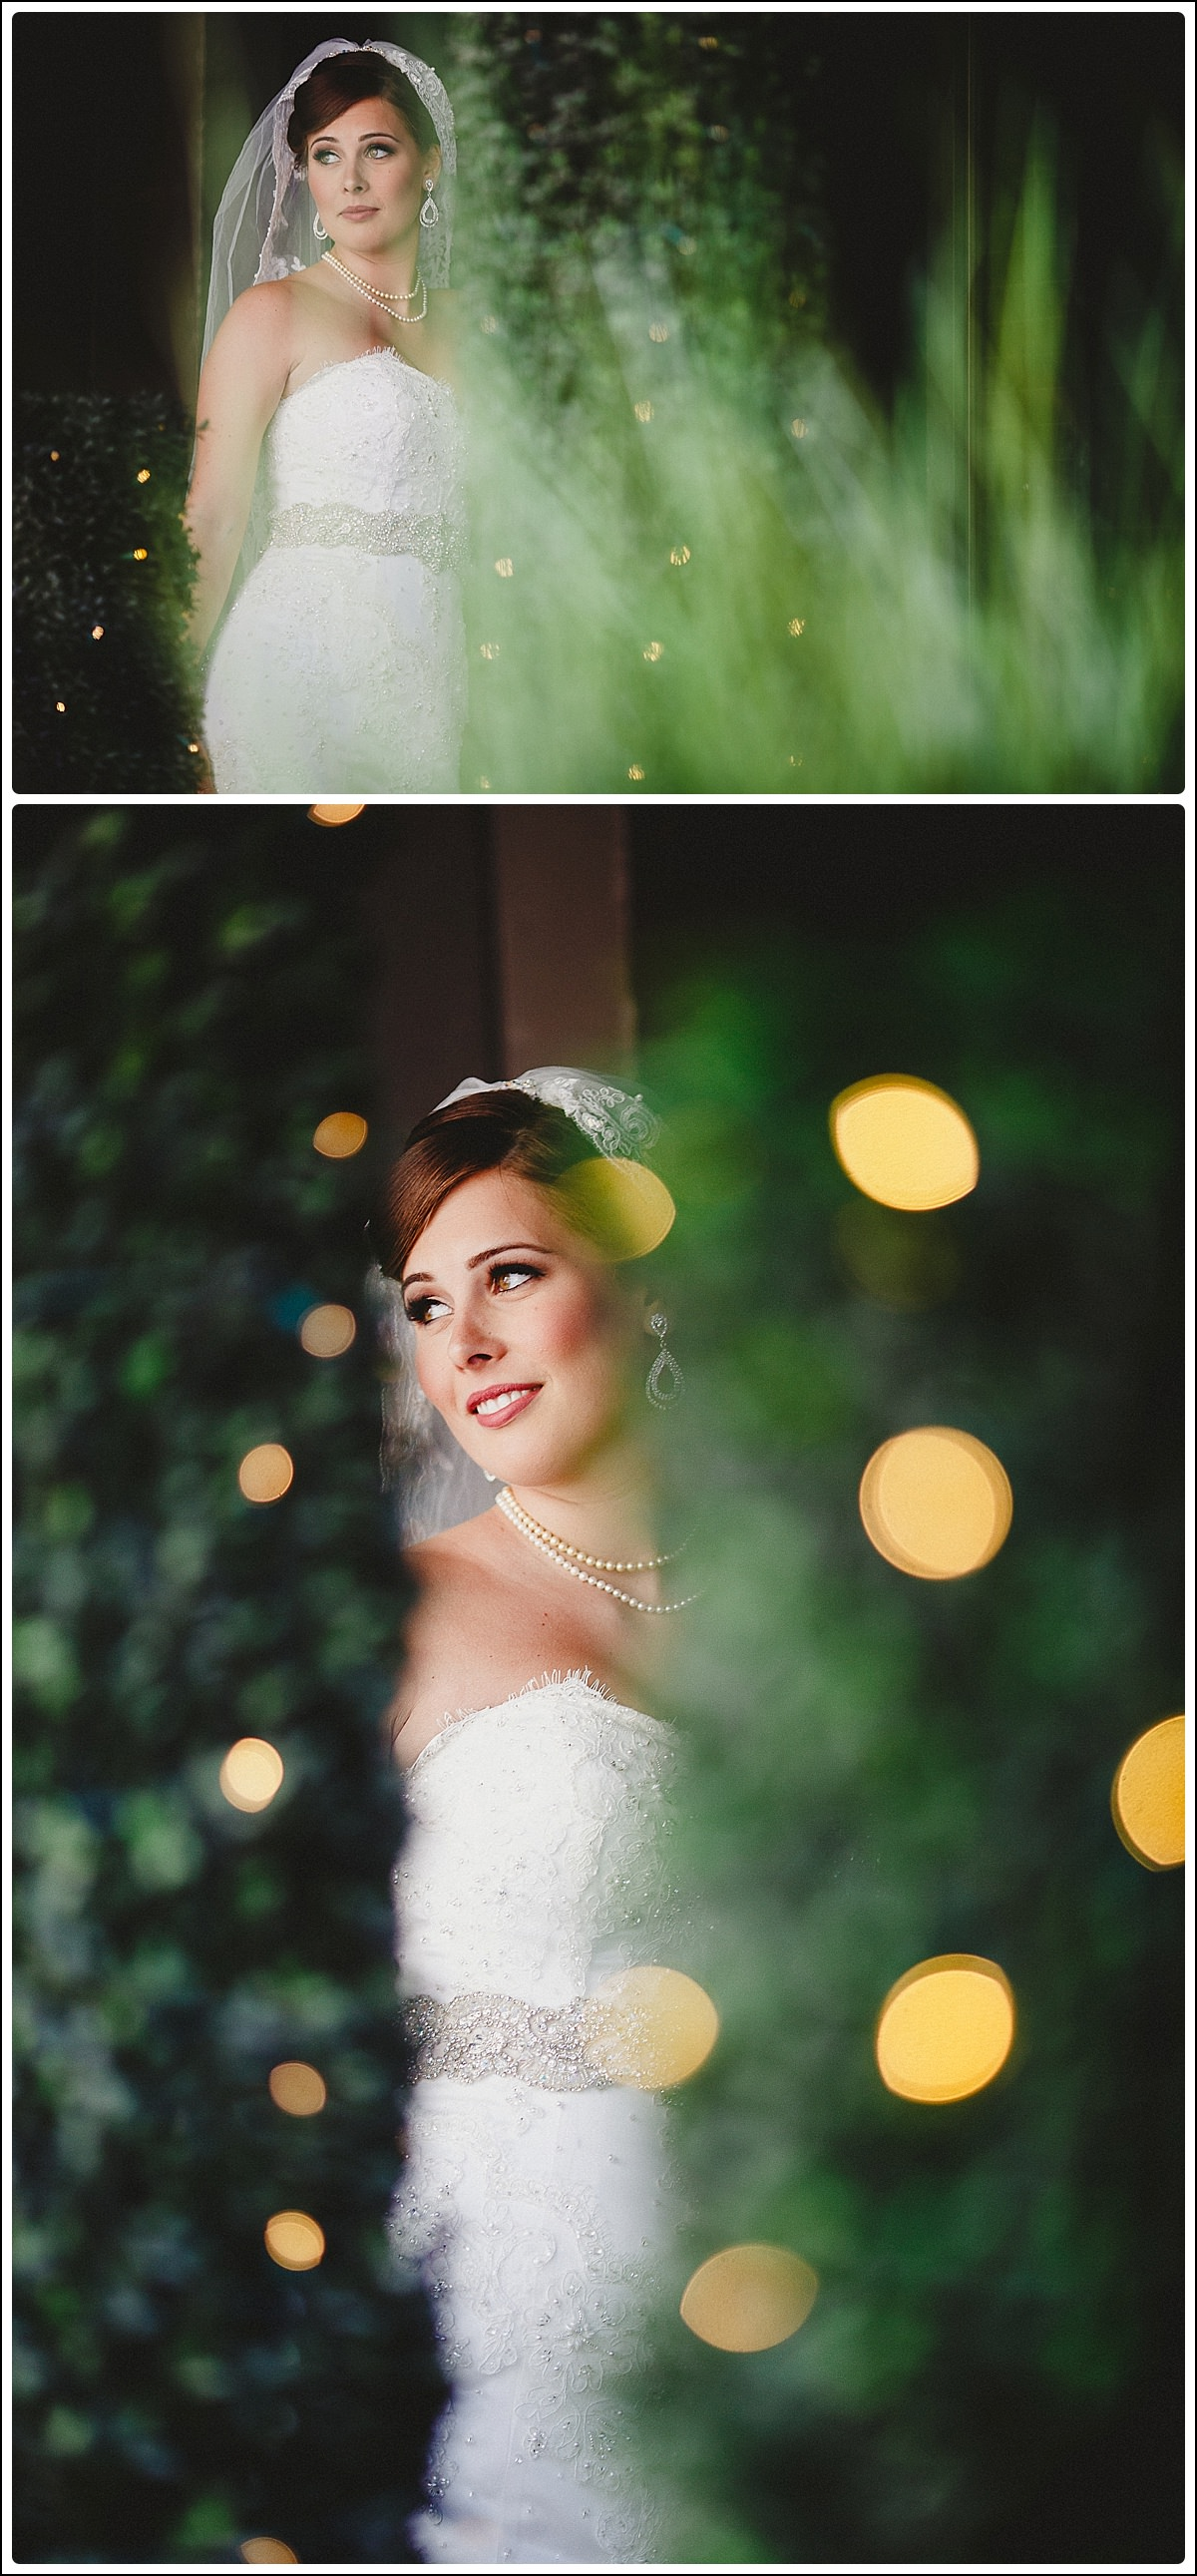 Calgary_Wedding_Photographers_-_Shannon_Teddy_0023.jpg